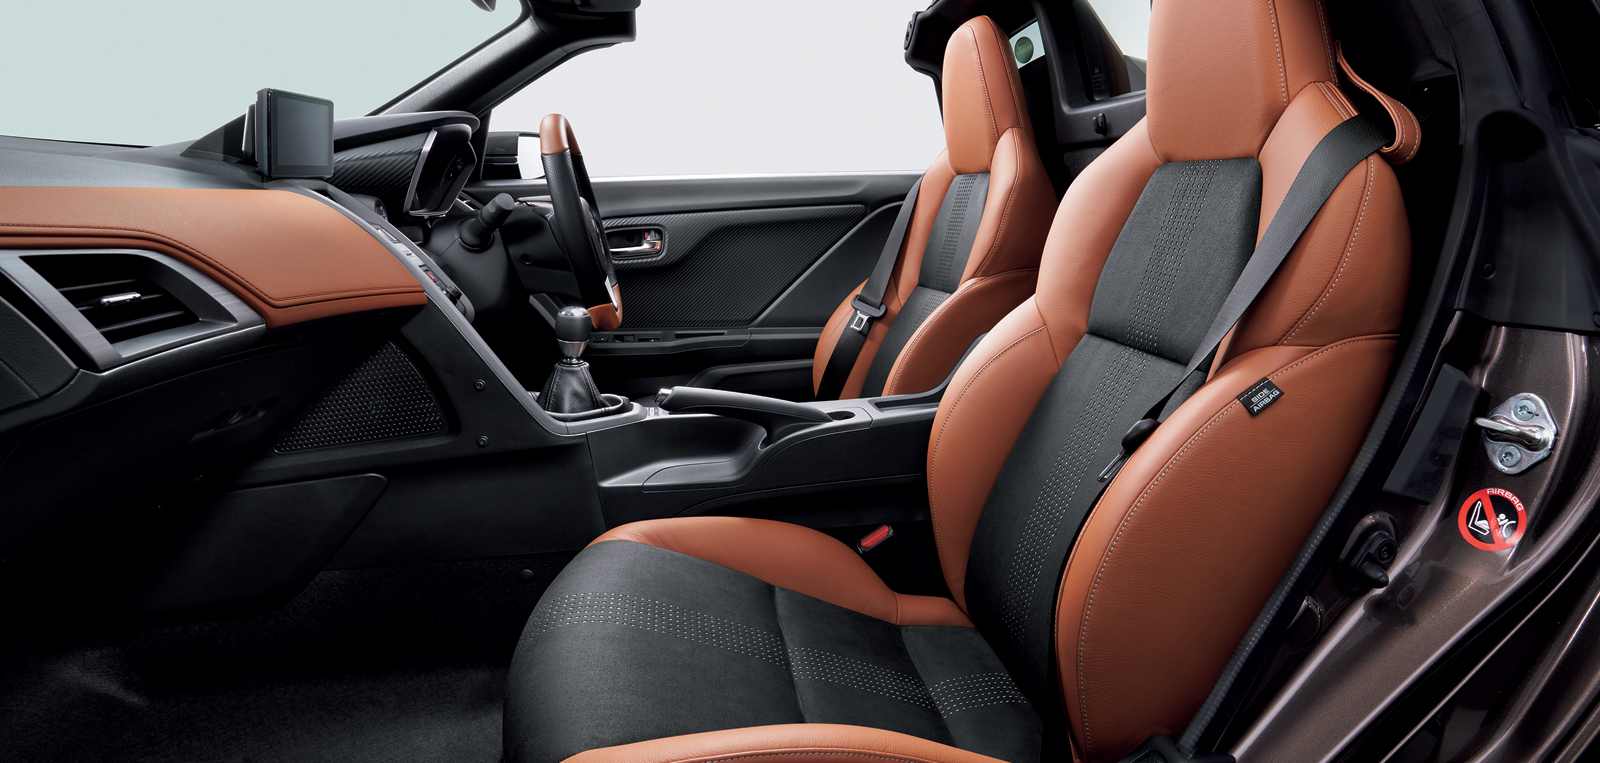 Honda_S660_Bruno_Leather_Edition_05